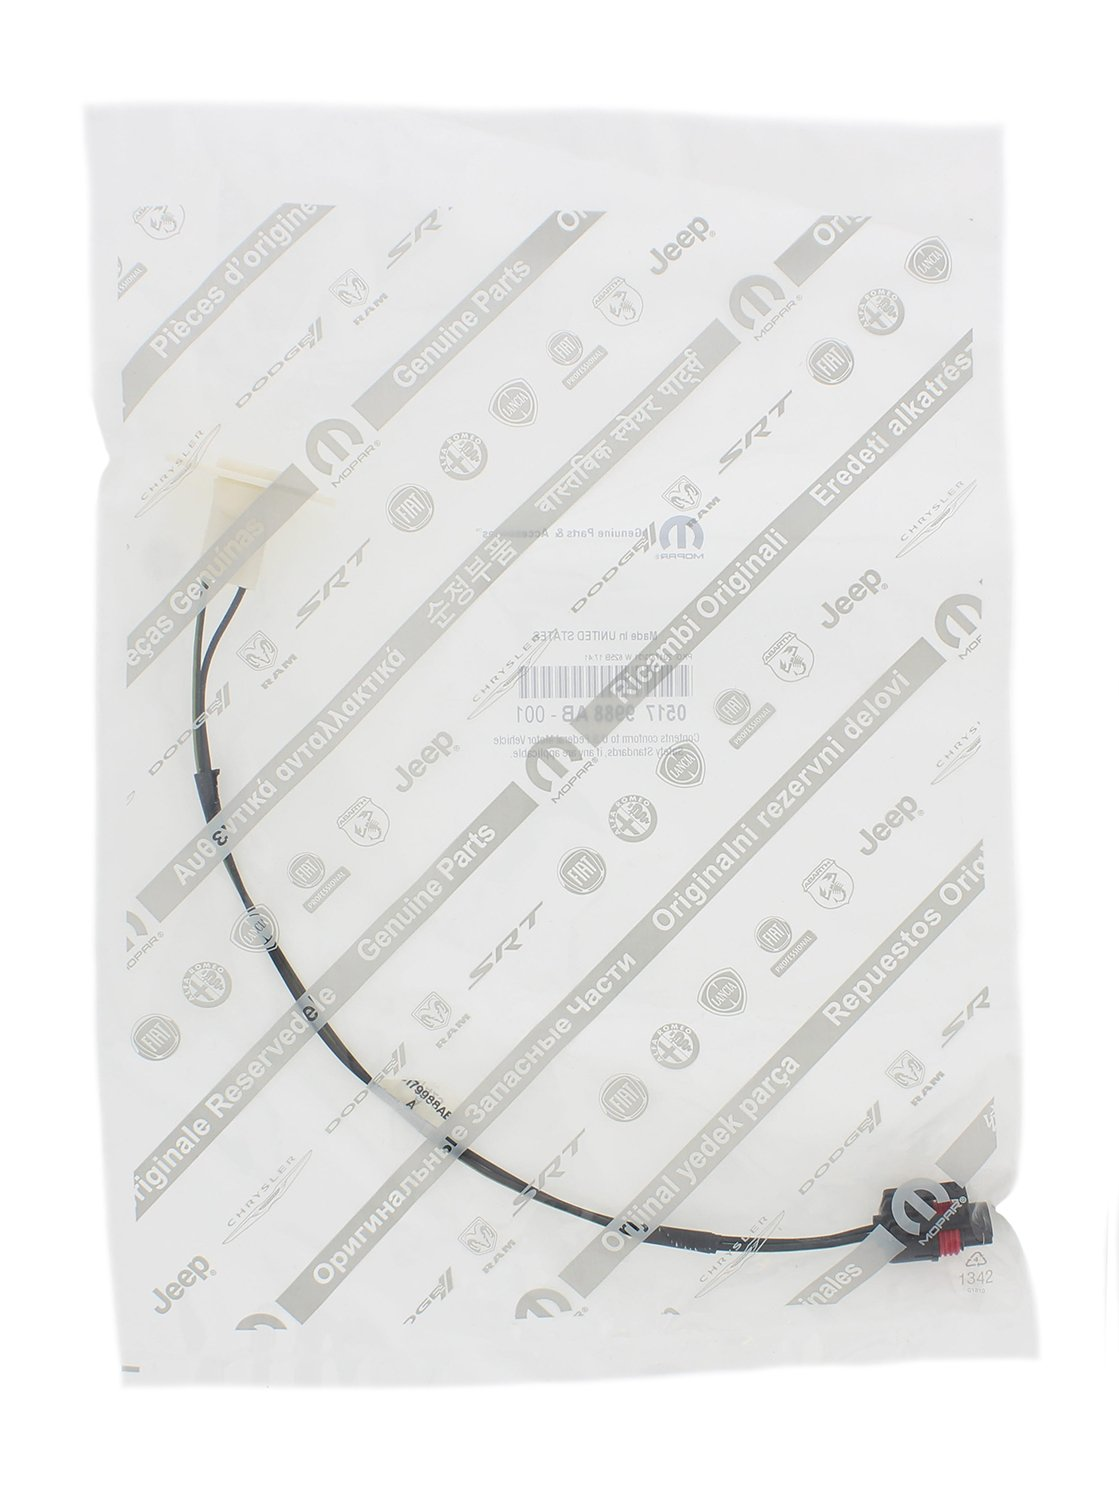 Mopar 5179988ab License Plate Lamp Wiring Automotive 1991 Dodge Dakota Fuse Box Tail Lights